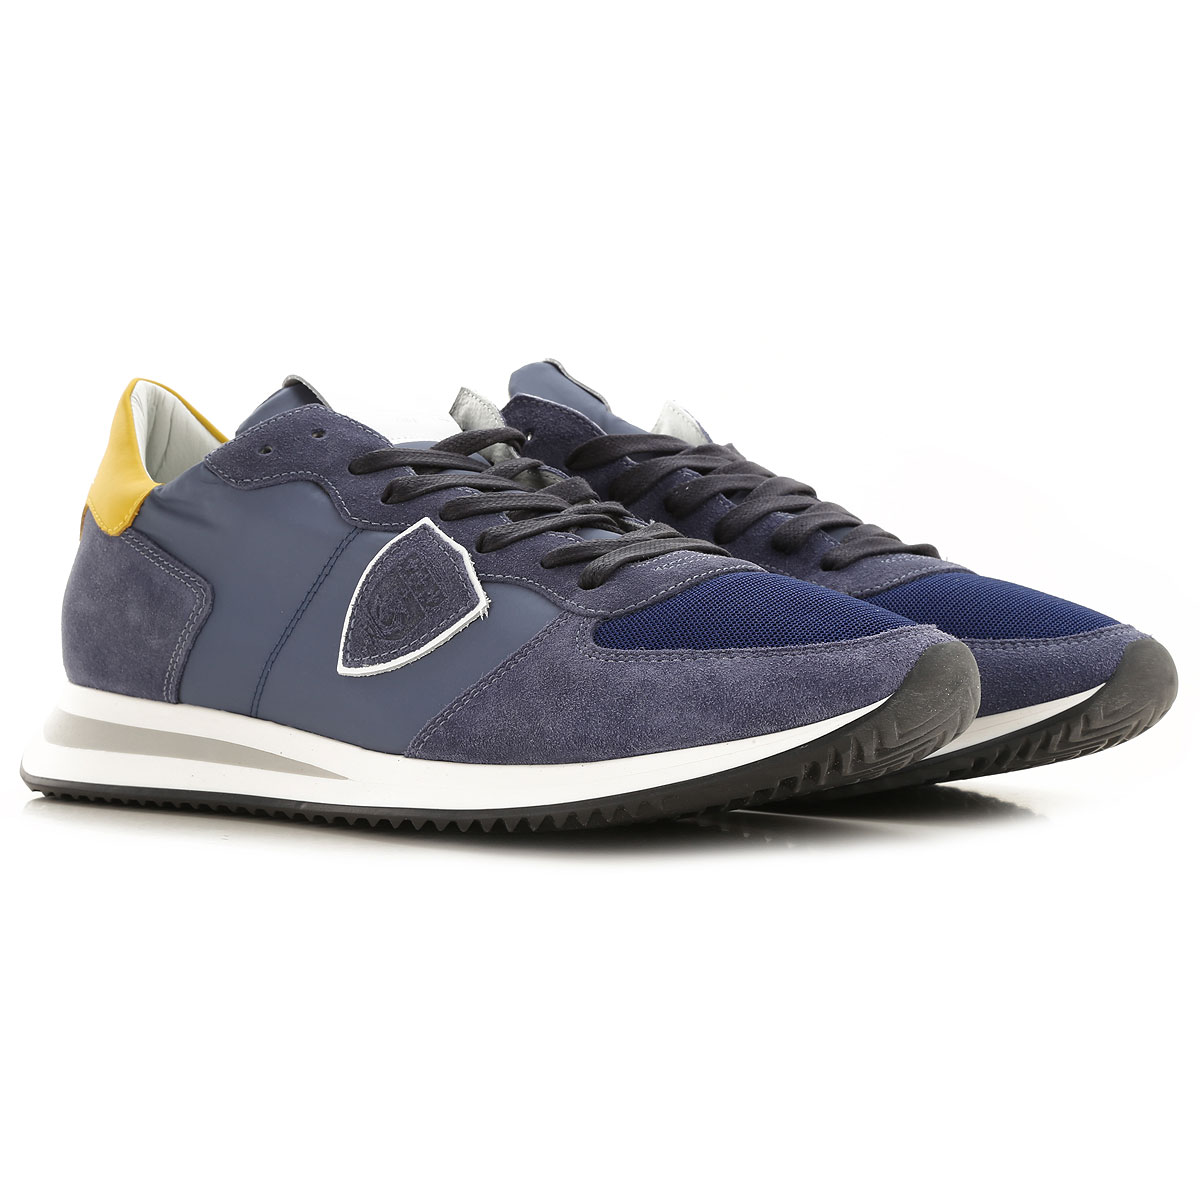 Philippe Model Mens Shoes On Sale, Denim, suede, 2019, 10 10.5 11.5 7.5 8 9